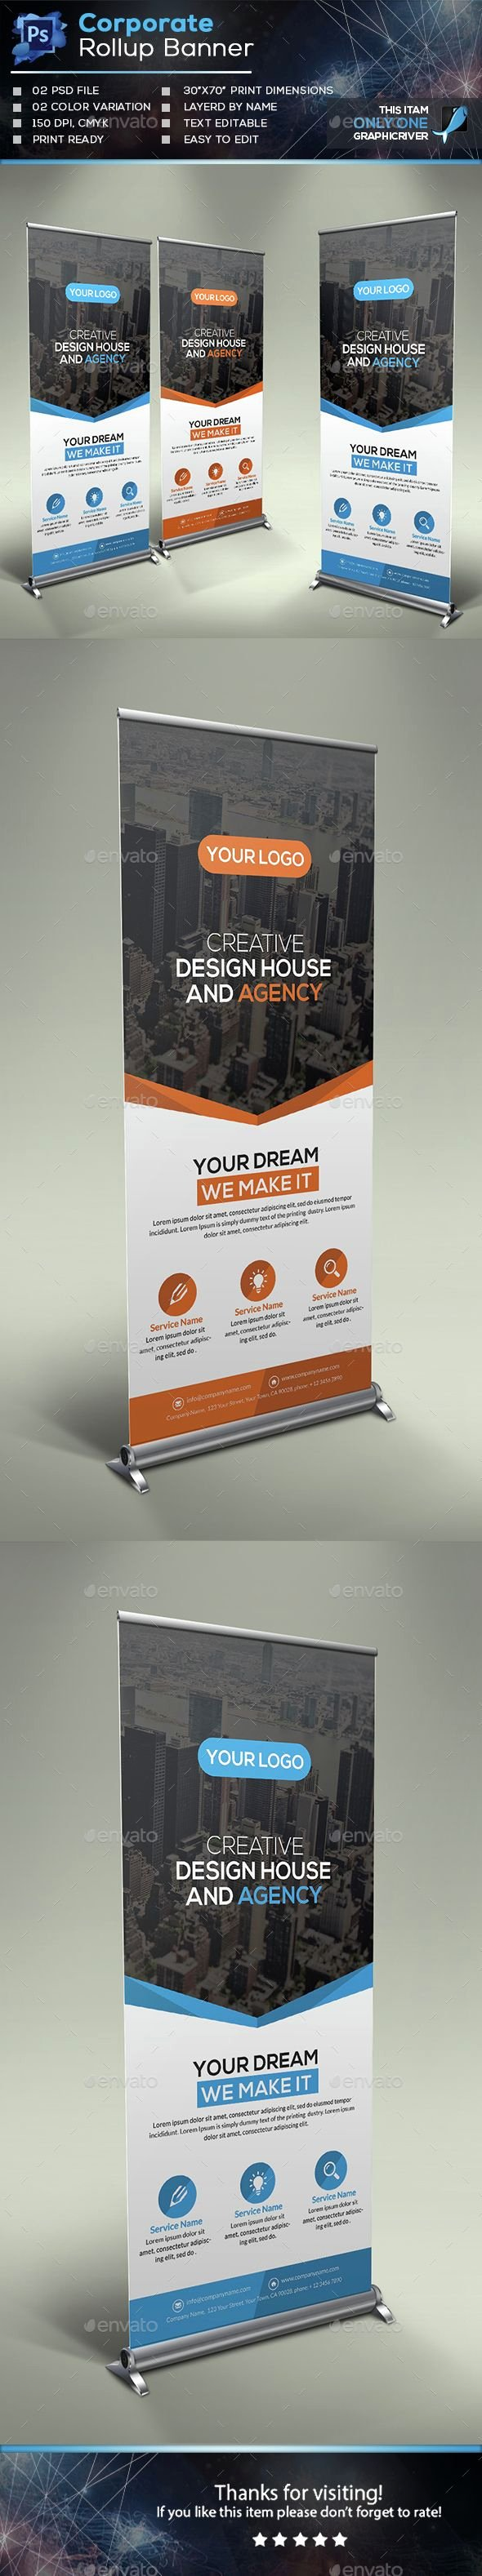 Retractable Banner Template Psd Luxury 25 Best Ideas About Retractable Banner On Pinterest